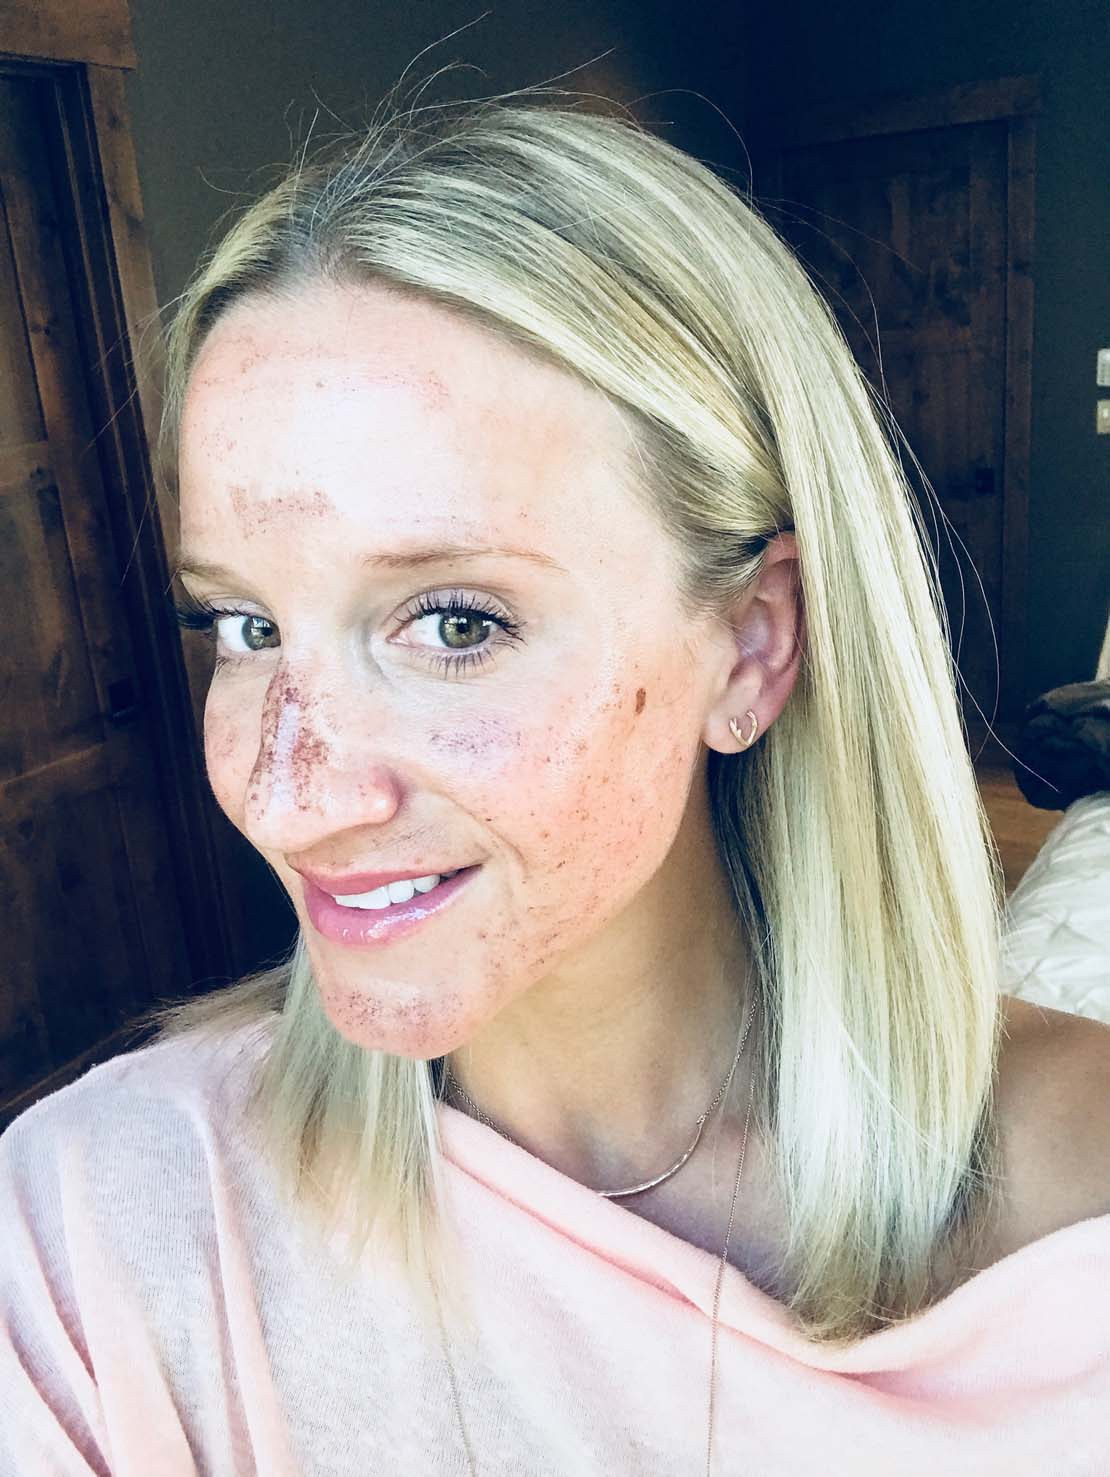 Ipl Intense Pulsed Light Treatment Review Antlers And Rose